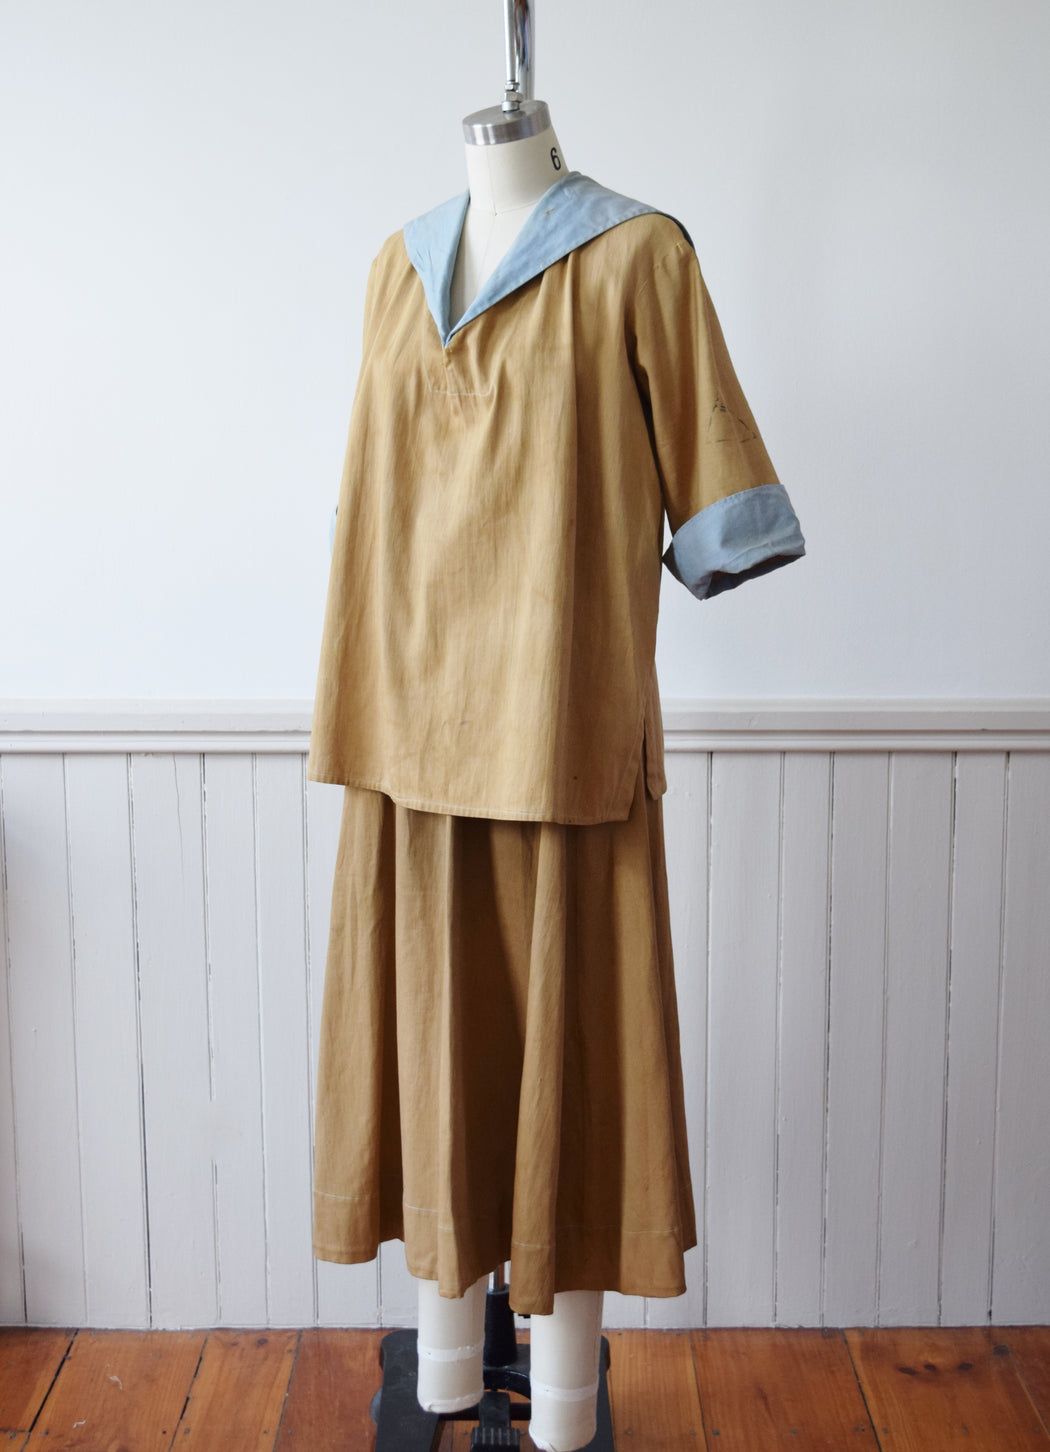 Early 1910s-1920s Camp Fire or Girl Scout Uniform